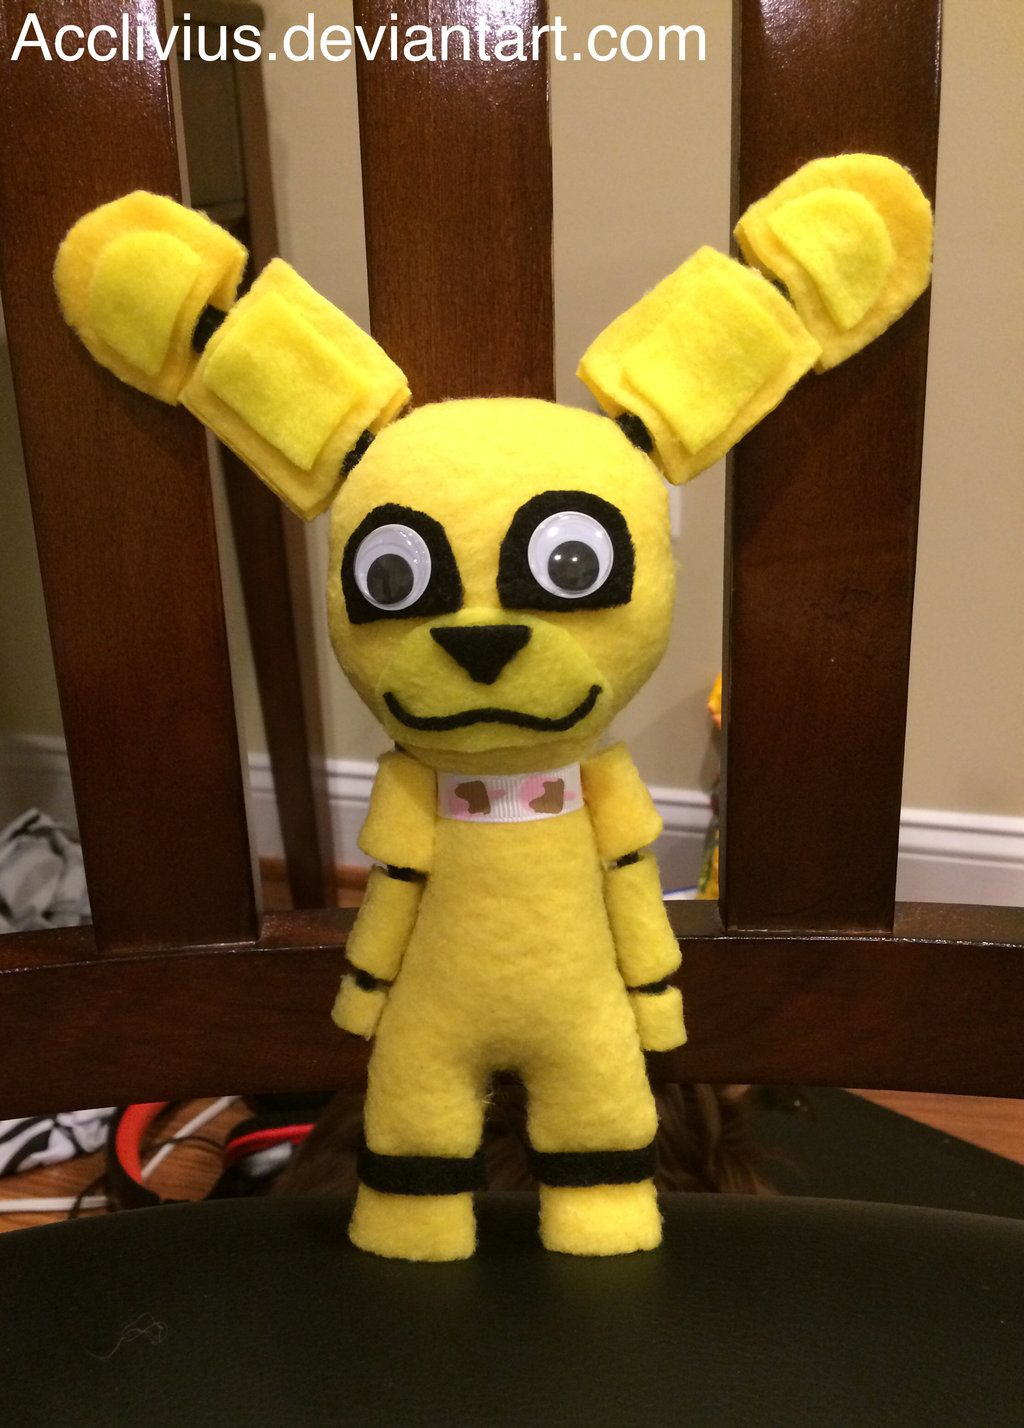 Fnaf bonnie costume for sale - Golden_bonnie_plush_by_acclivius D8fxvr5 Jpg 1024 1428